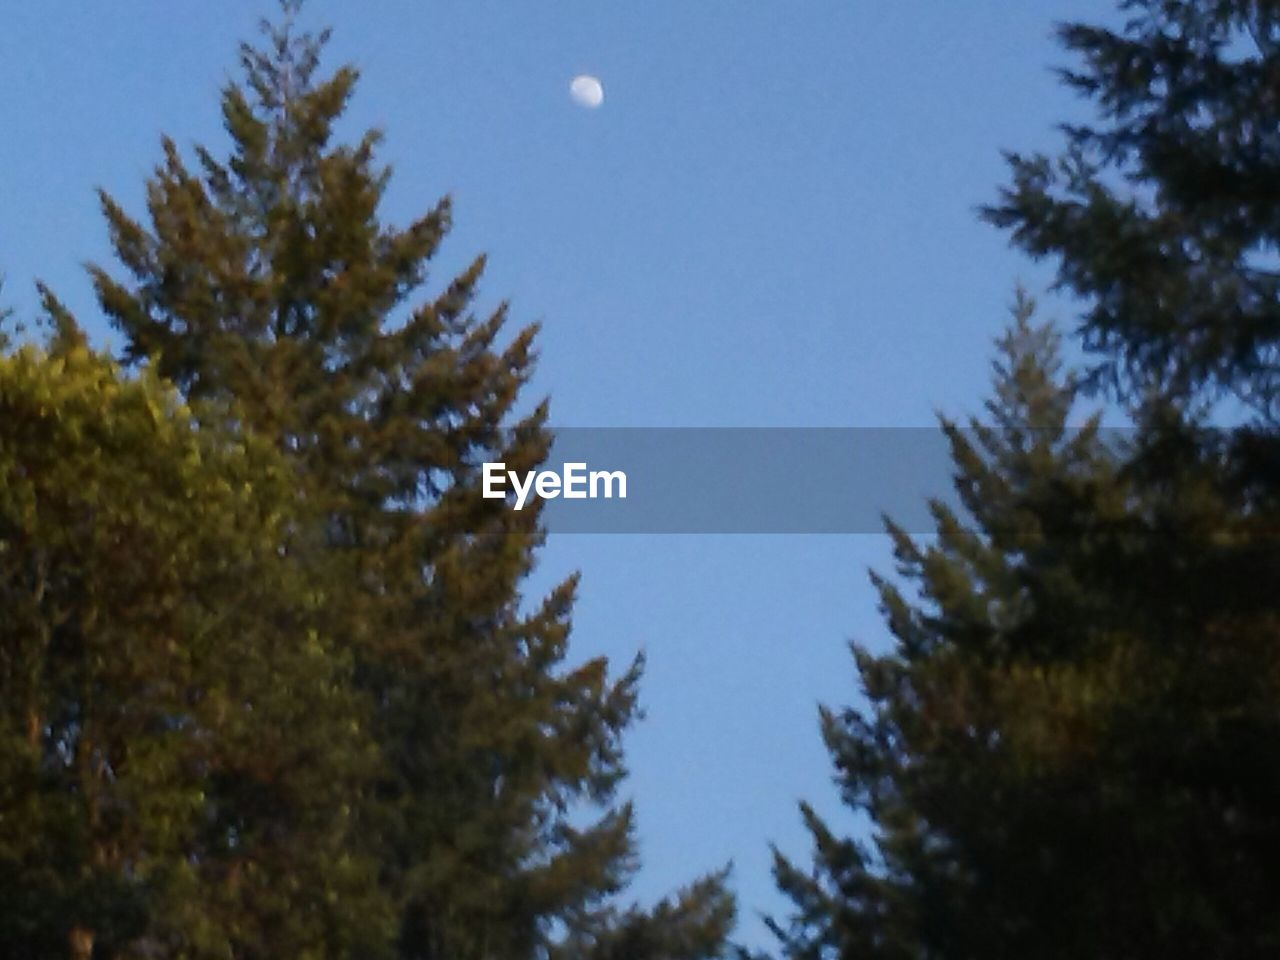 tree, plant, sky, low angle view, moon, beauty in nature, no people, nature, growth, clear sky, outdoors, tranquility, day, pine tree, branch, blue, coniferous tree, space, astronomy, tranquil scene, fir tree